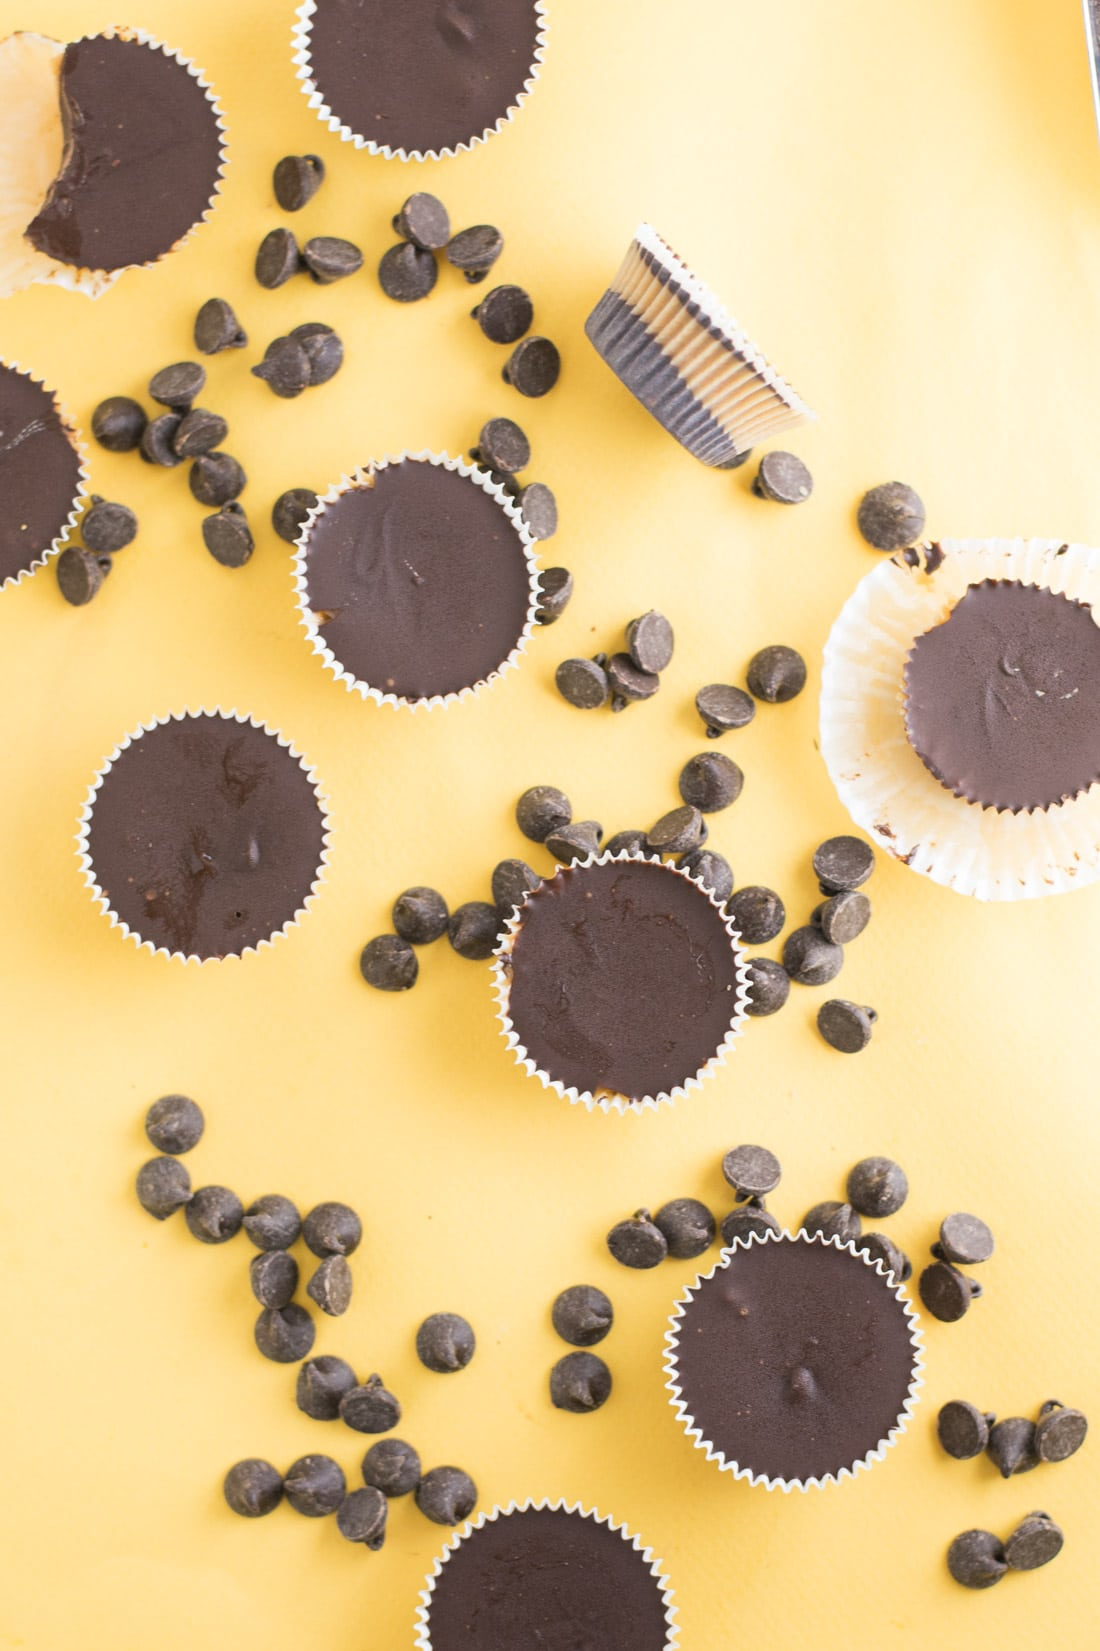 Dark Chocolate Peanut Butter Cups -- These vegan homemade Reese peanut butter cups are made with just a few simple ingredients. The classic combination of chocolate and peanut butter is delicious in this peanut butter cup recipe!   mindfulavocado